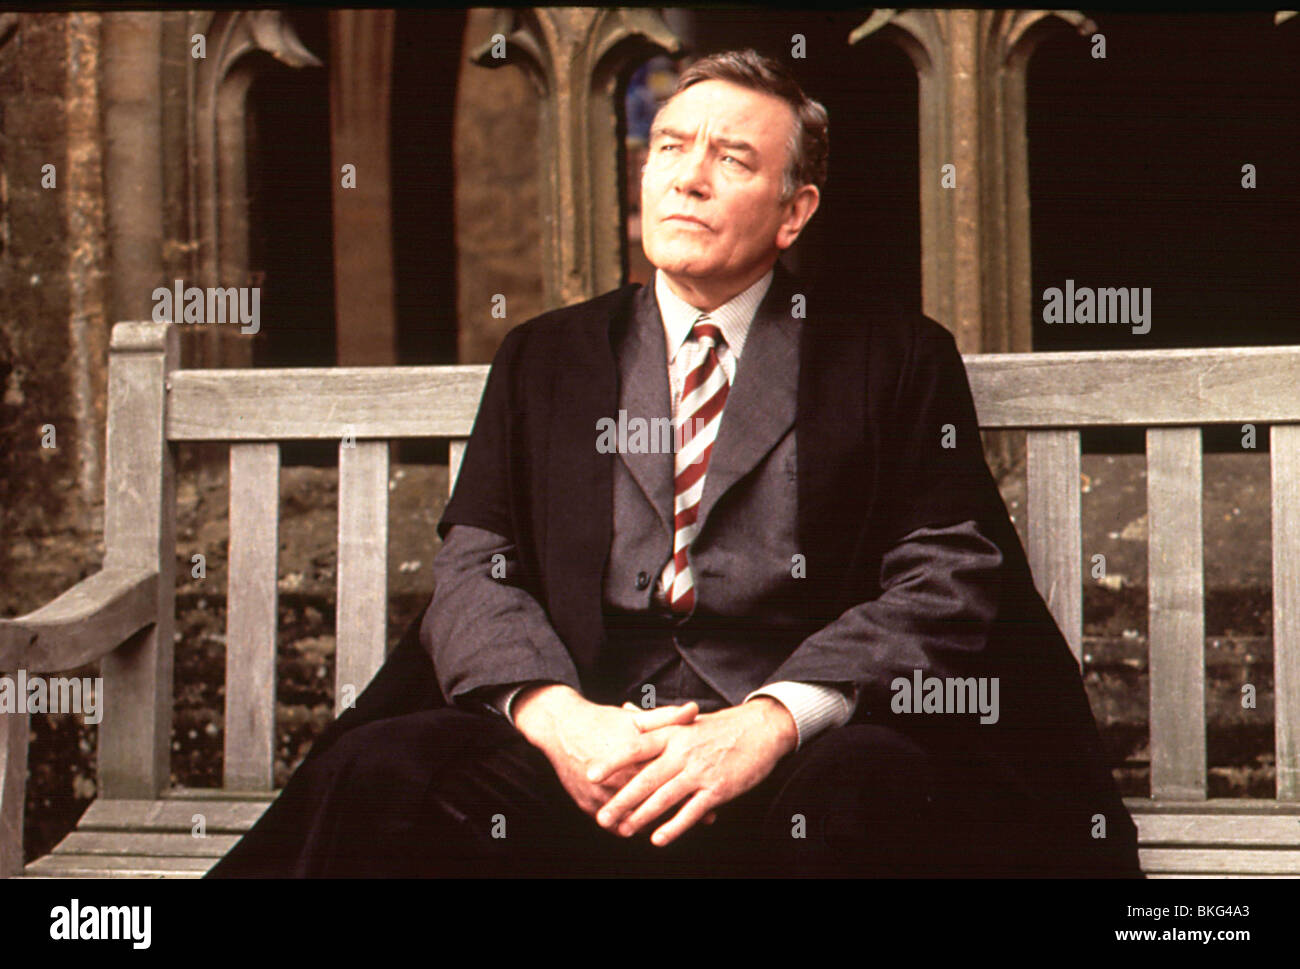 THE BROWNING VERSION (1993) ALBERT FINNEY BRWV 014 - Stock Image